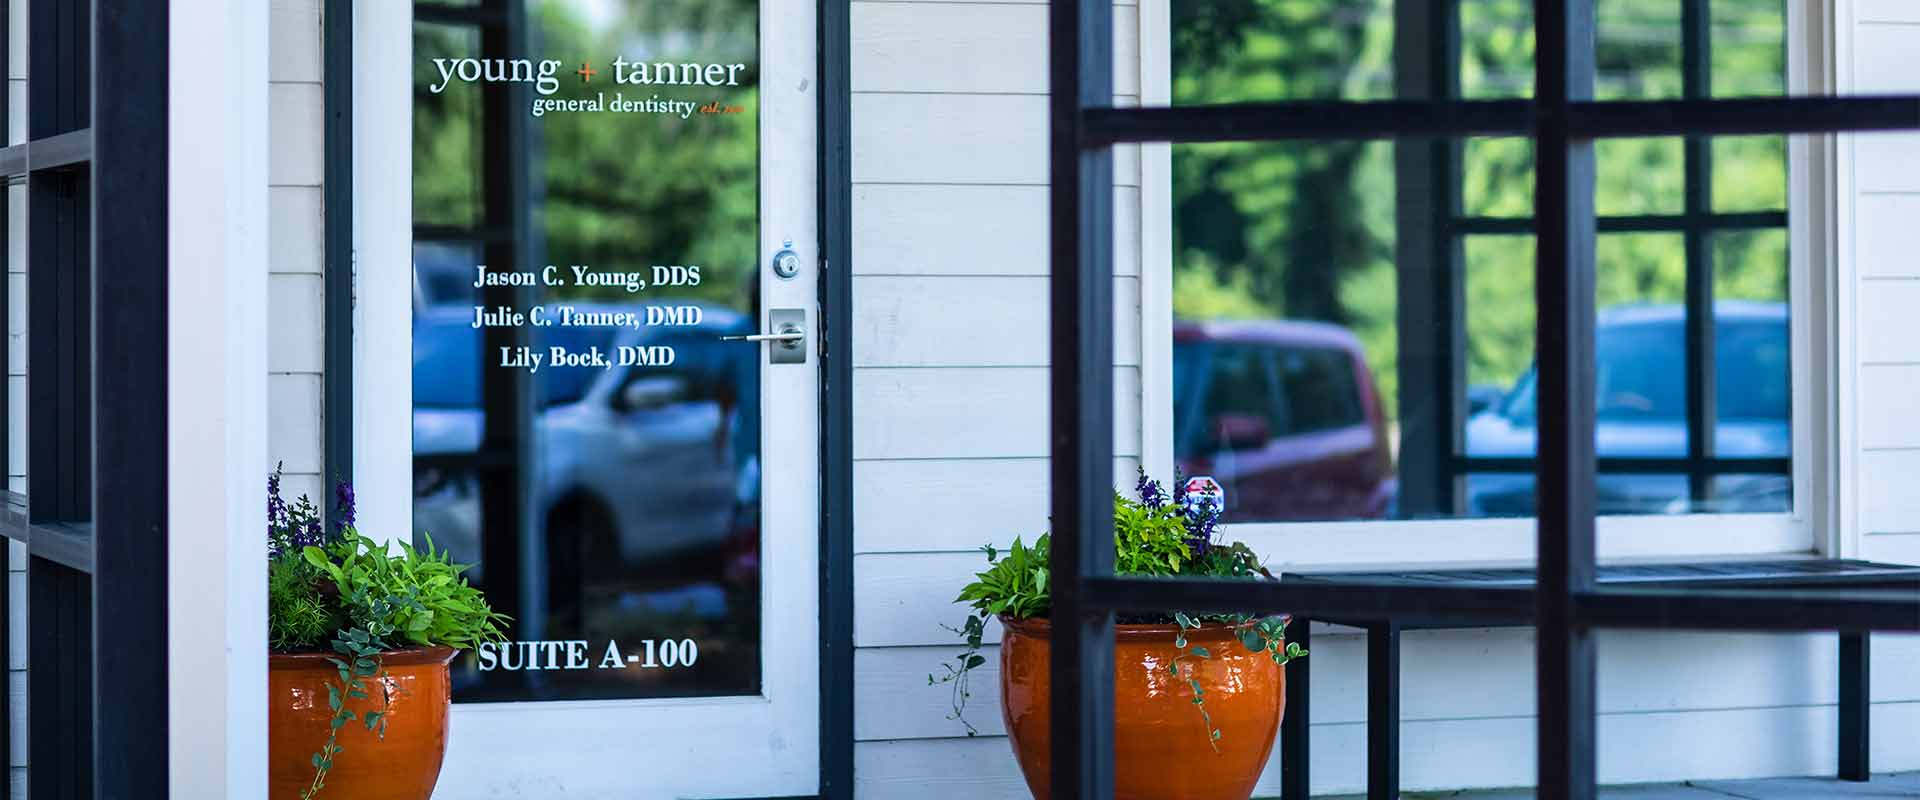 Young & Tanner General Dentistry in Marietta